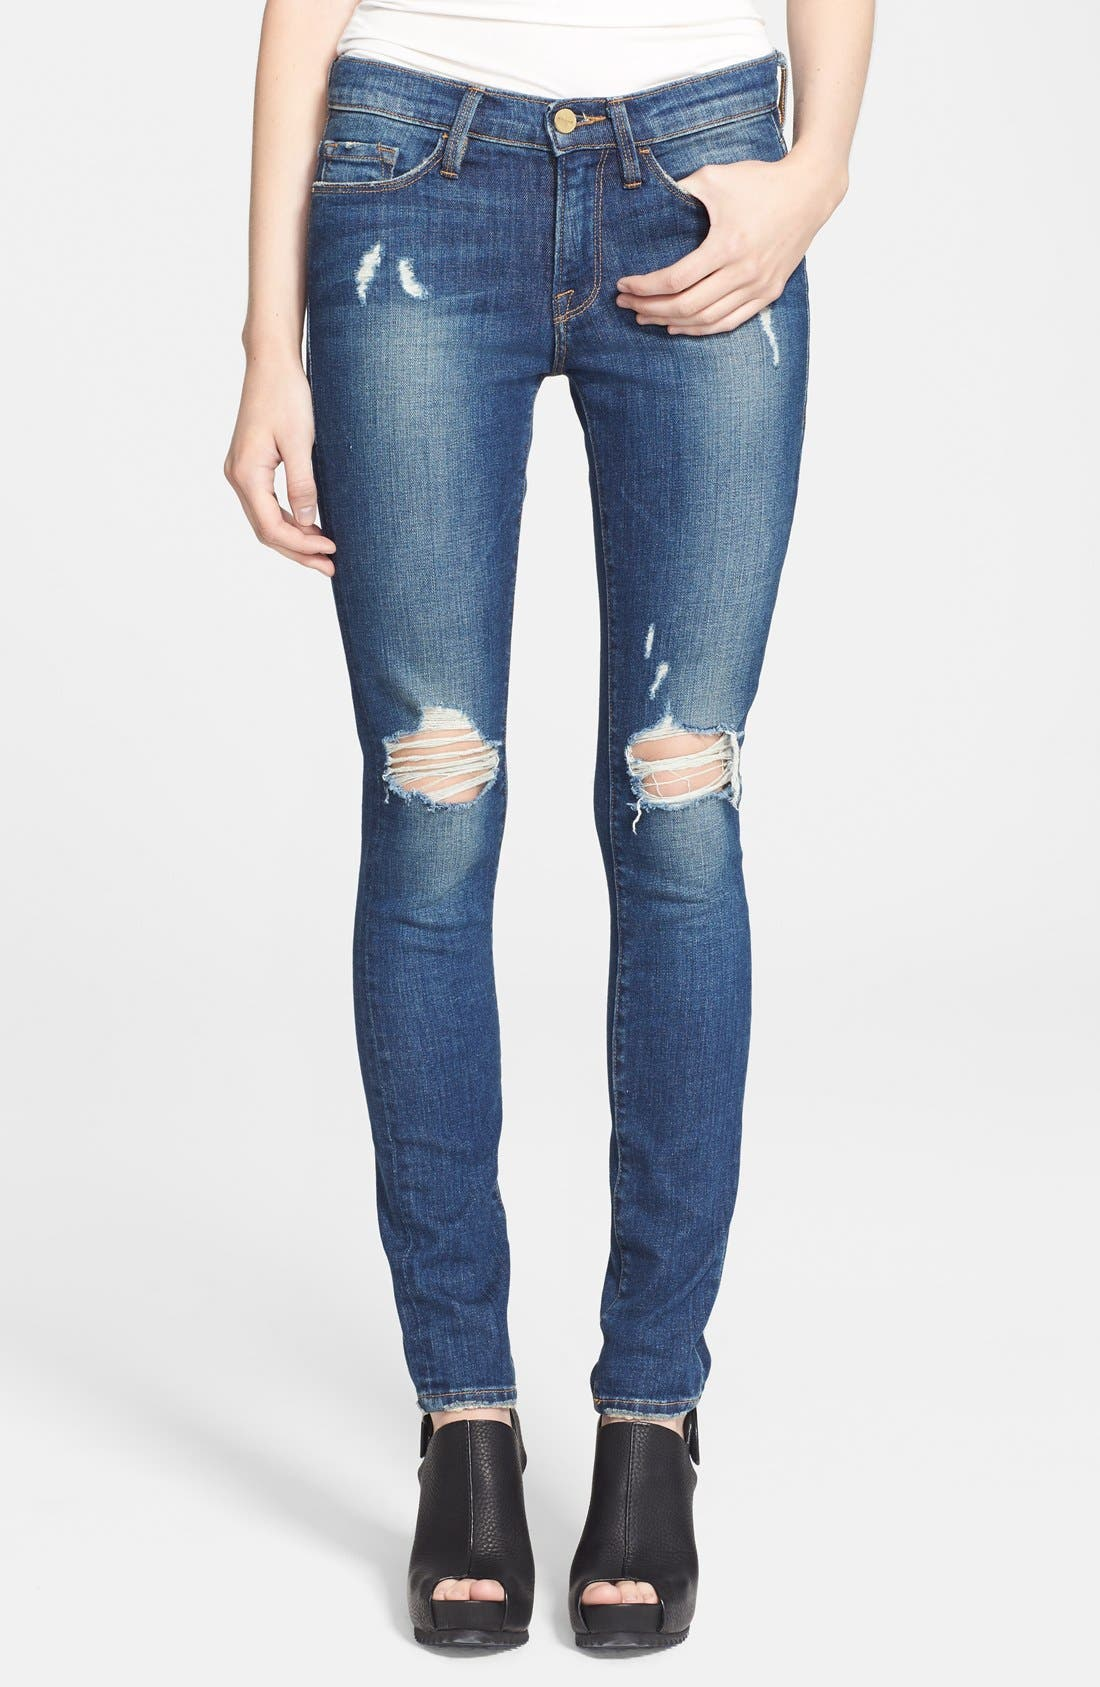 Alternate Image 1 Selected - Frame Denim 'Le Skinny de Jeanne' Destroyed Jeans (Walgrove)